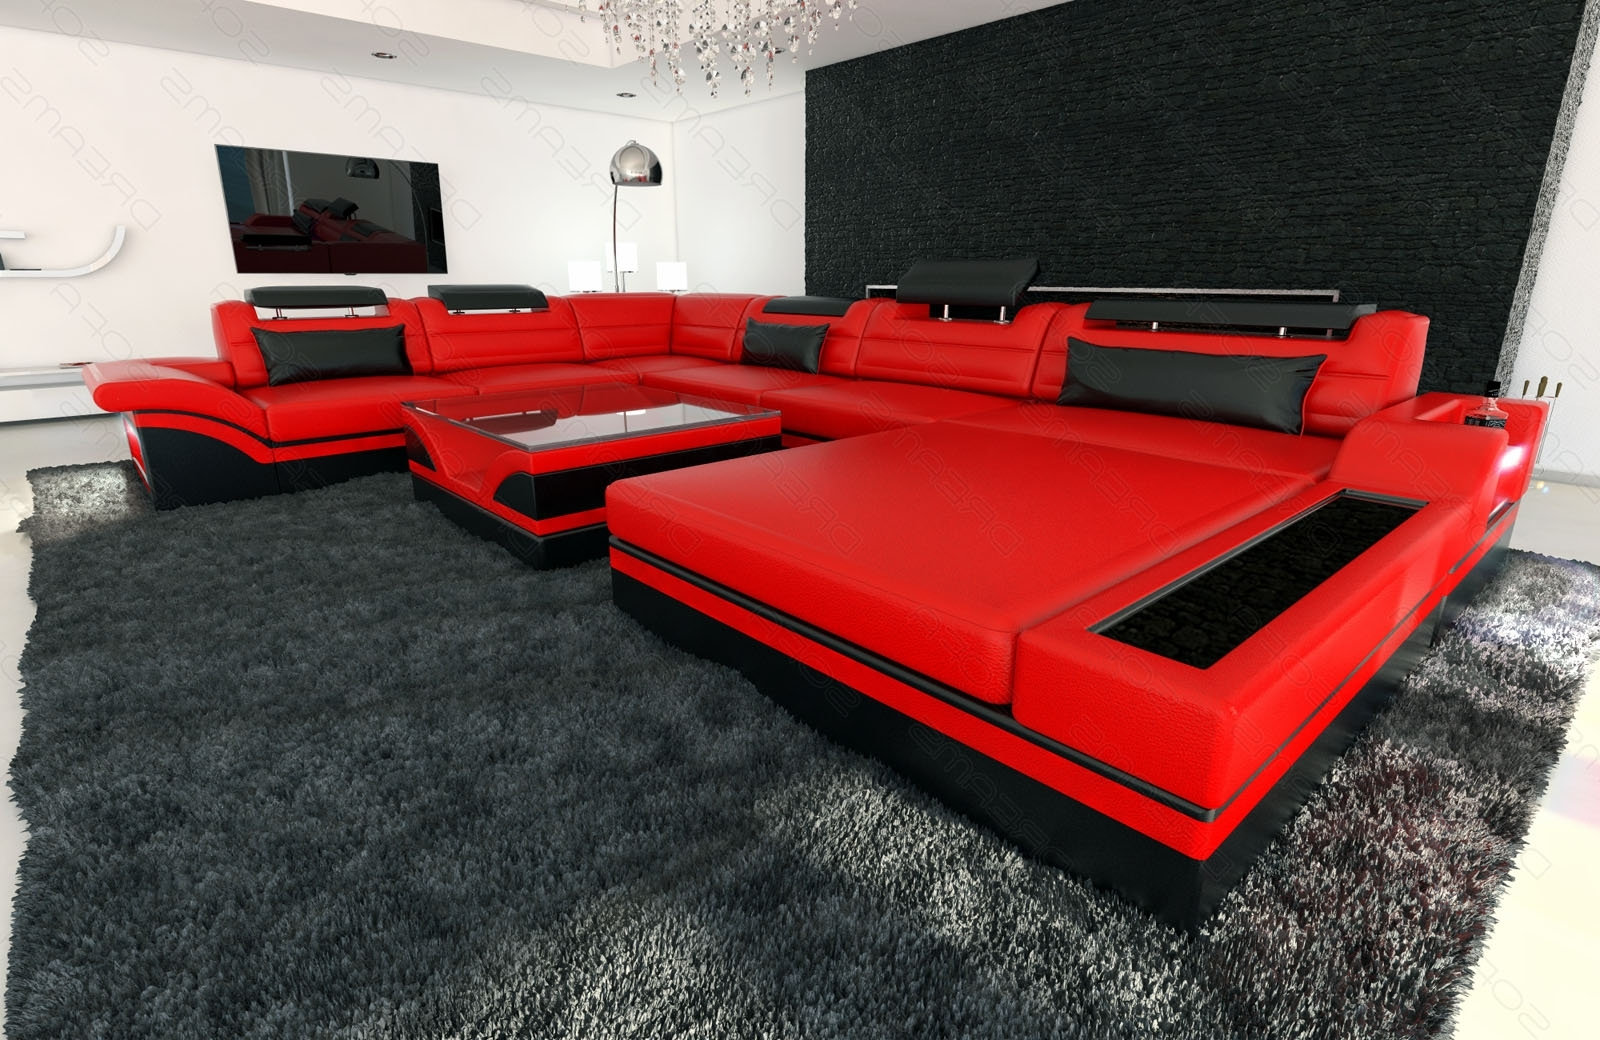 Red And Black Sofas Within Most Popular Design Sectional Sofa Mezzo Xxl With Led Lights Red Black (View 13 of 15)